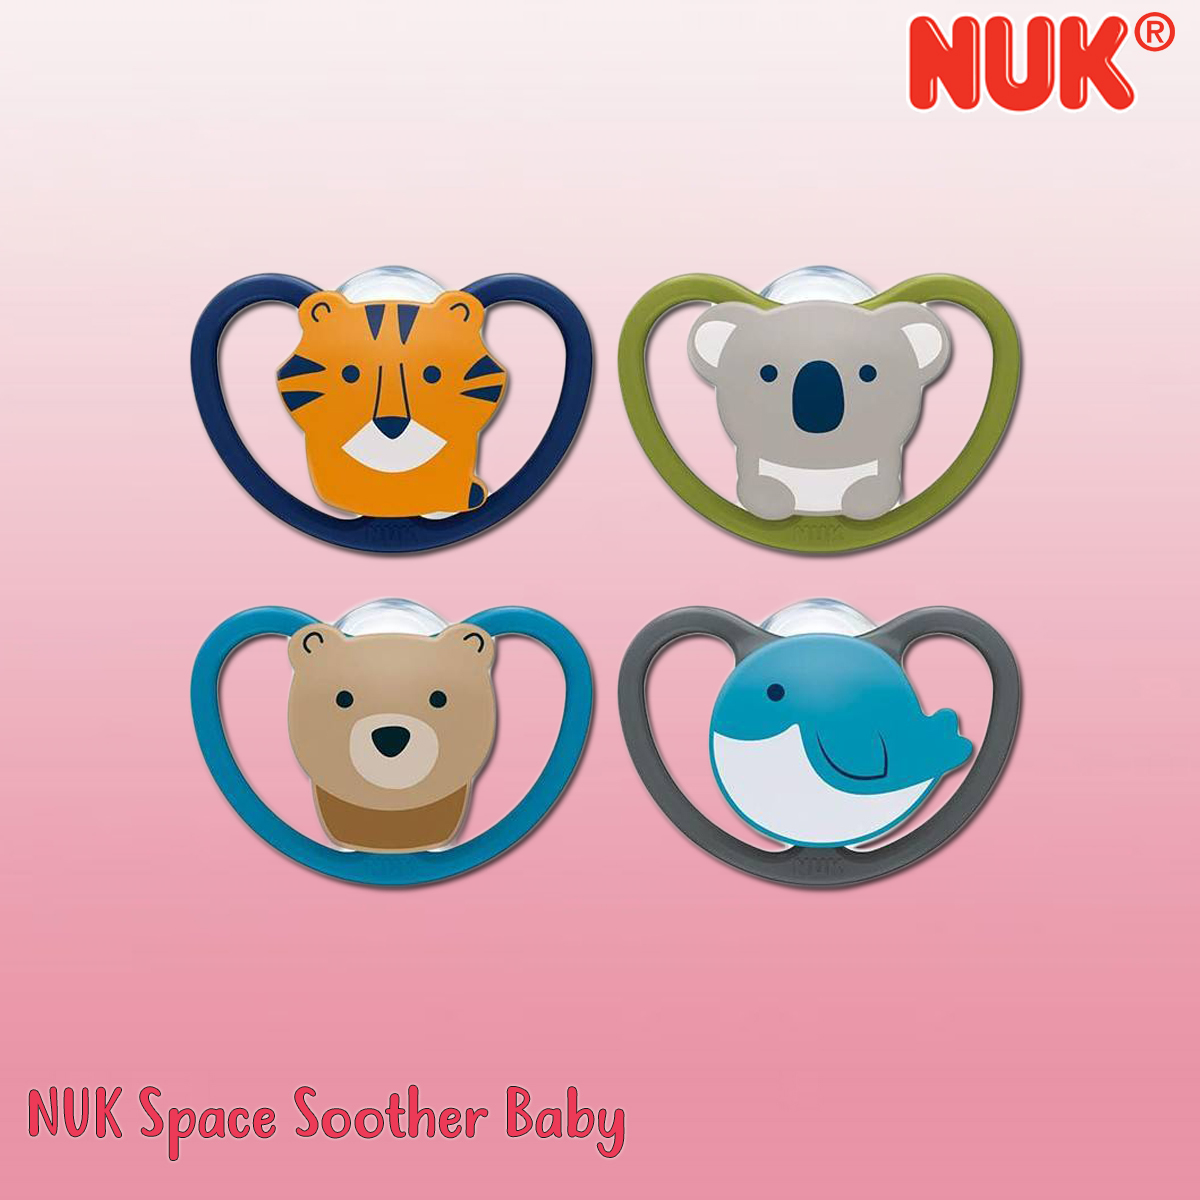 NUK Space Soother Baby.jpg